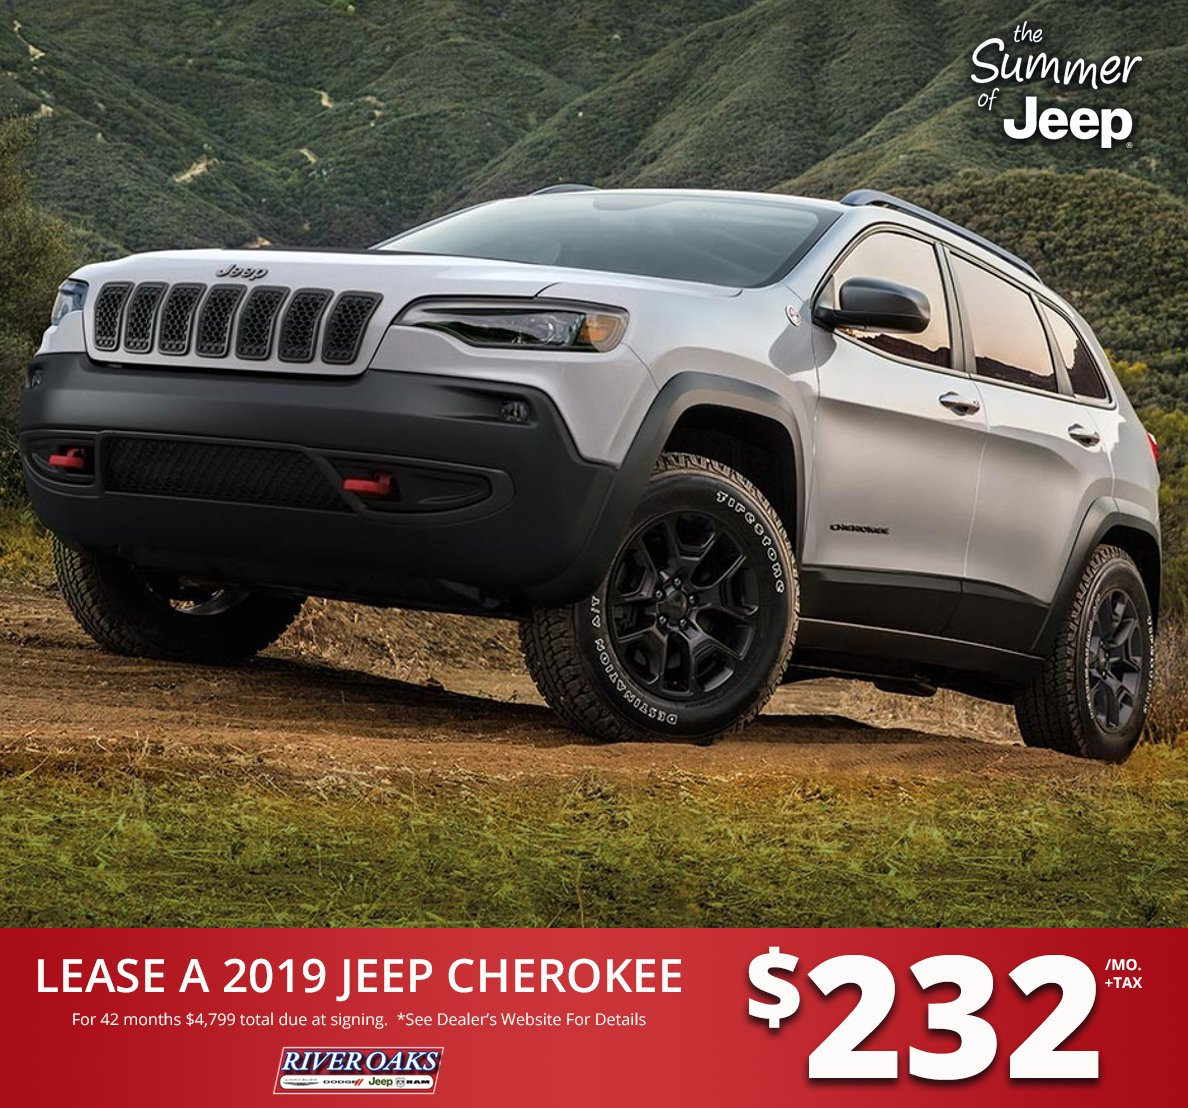 River Oaks Dodge >> River Oaks Chrysler Jeep Dodge Ram On Twitter Don T